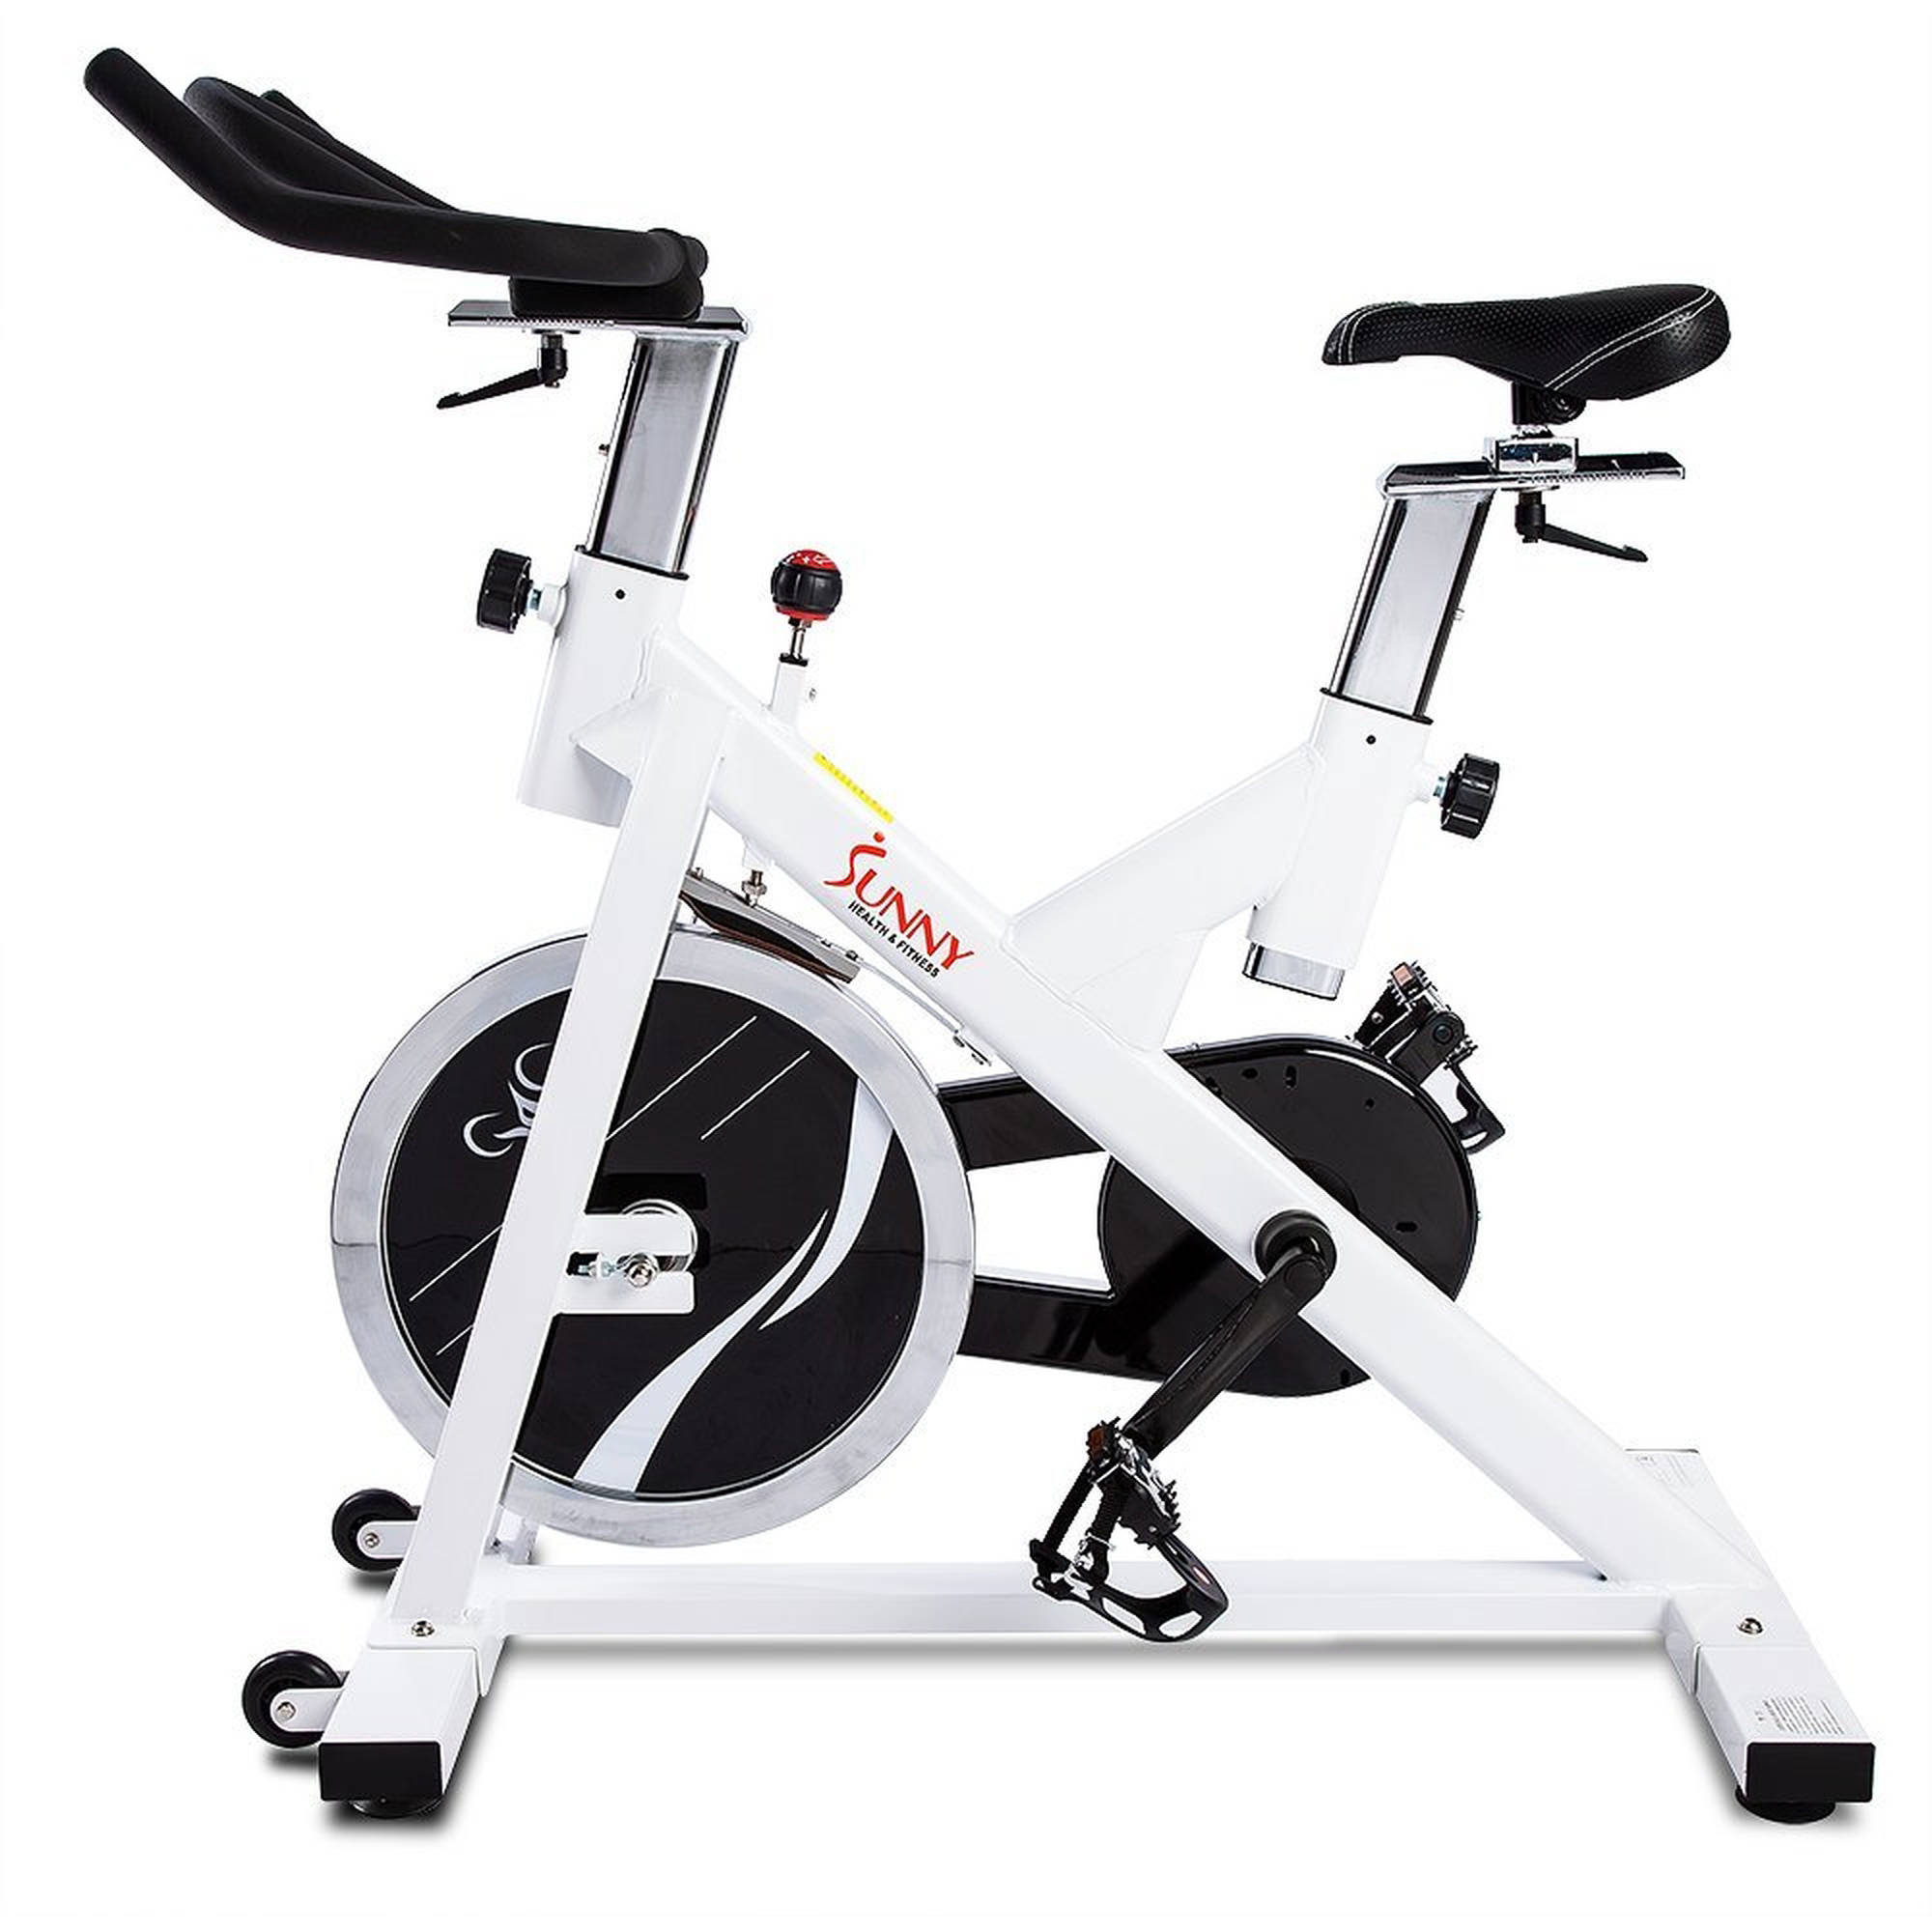 dd92d5464be Sunny Health & Fitness SF-B1110 Indoor Cycling Exercise Bike with 44 lb.  Flywheel - Walmart.com